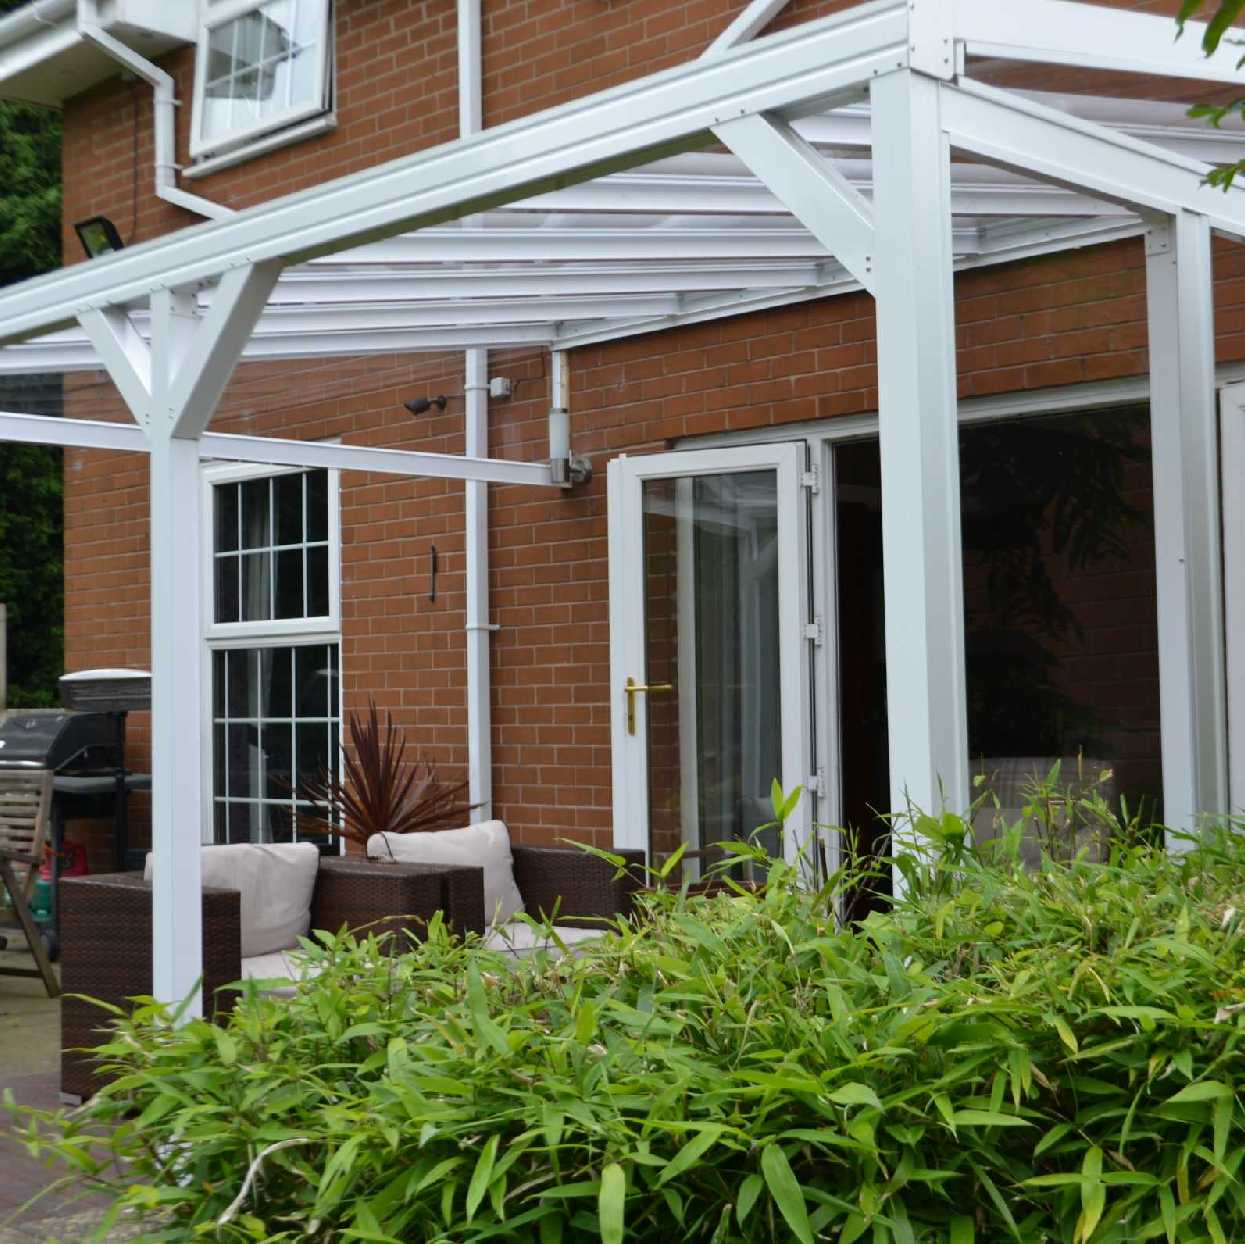 Omega Smart White Lean-To Canopy with 6mm Glass Clear Plate Polycarbonate Glazing - 10.5m (W) x 3.0m (P), (5) Supporting Posts from Omega Build